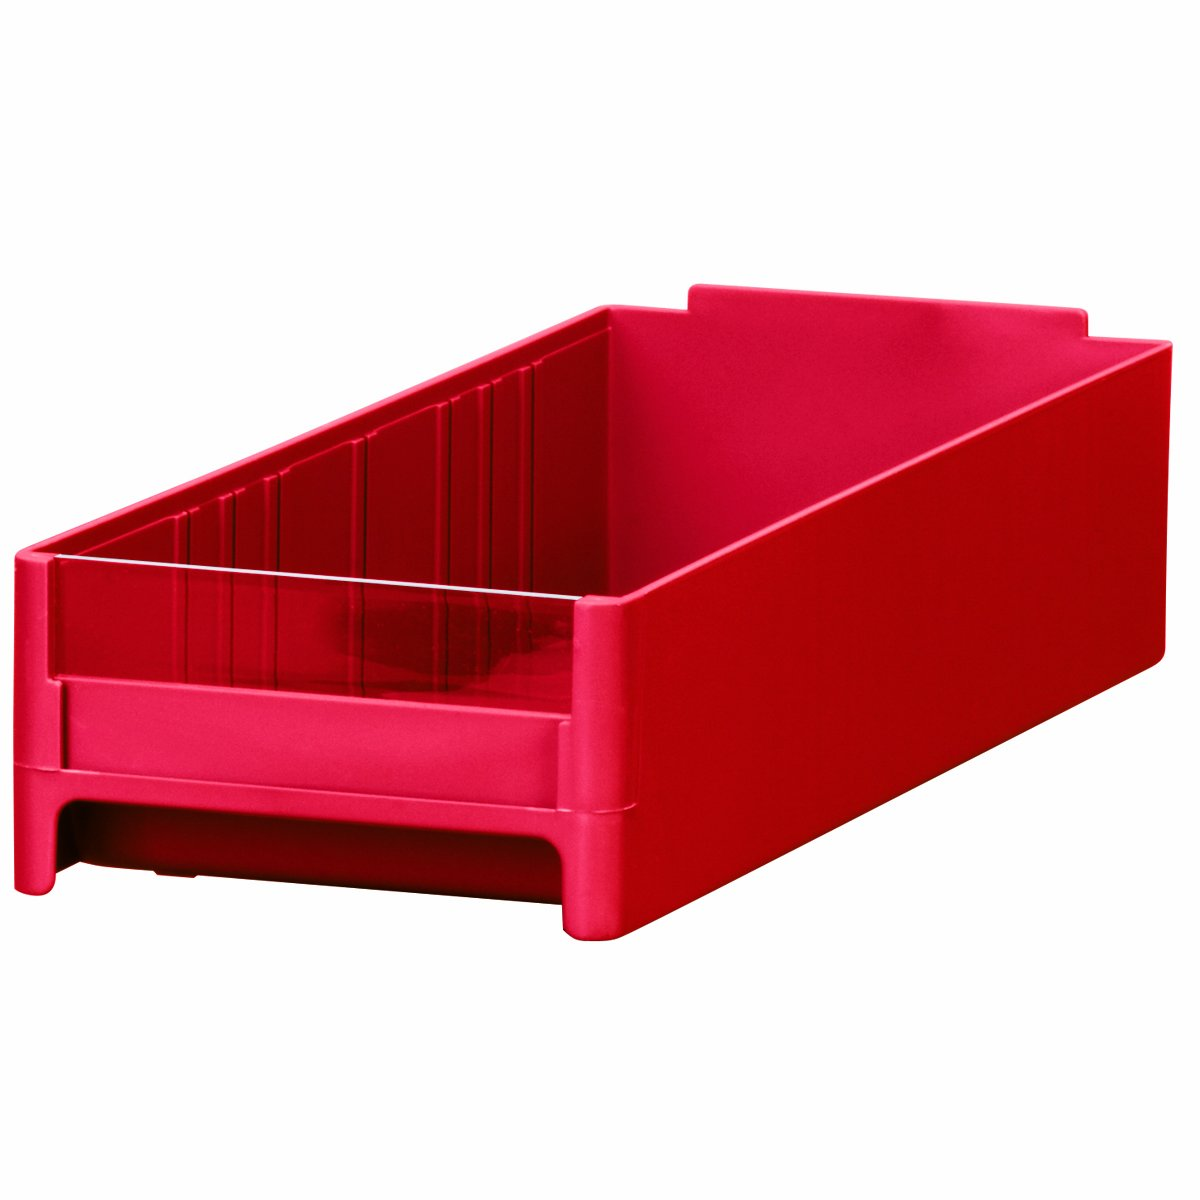 Akro-Mils 20416 Replacement Drawer for 19416 Steel Storage Cabinet, Red, Case of 32